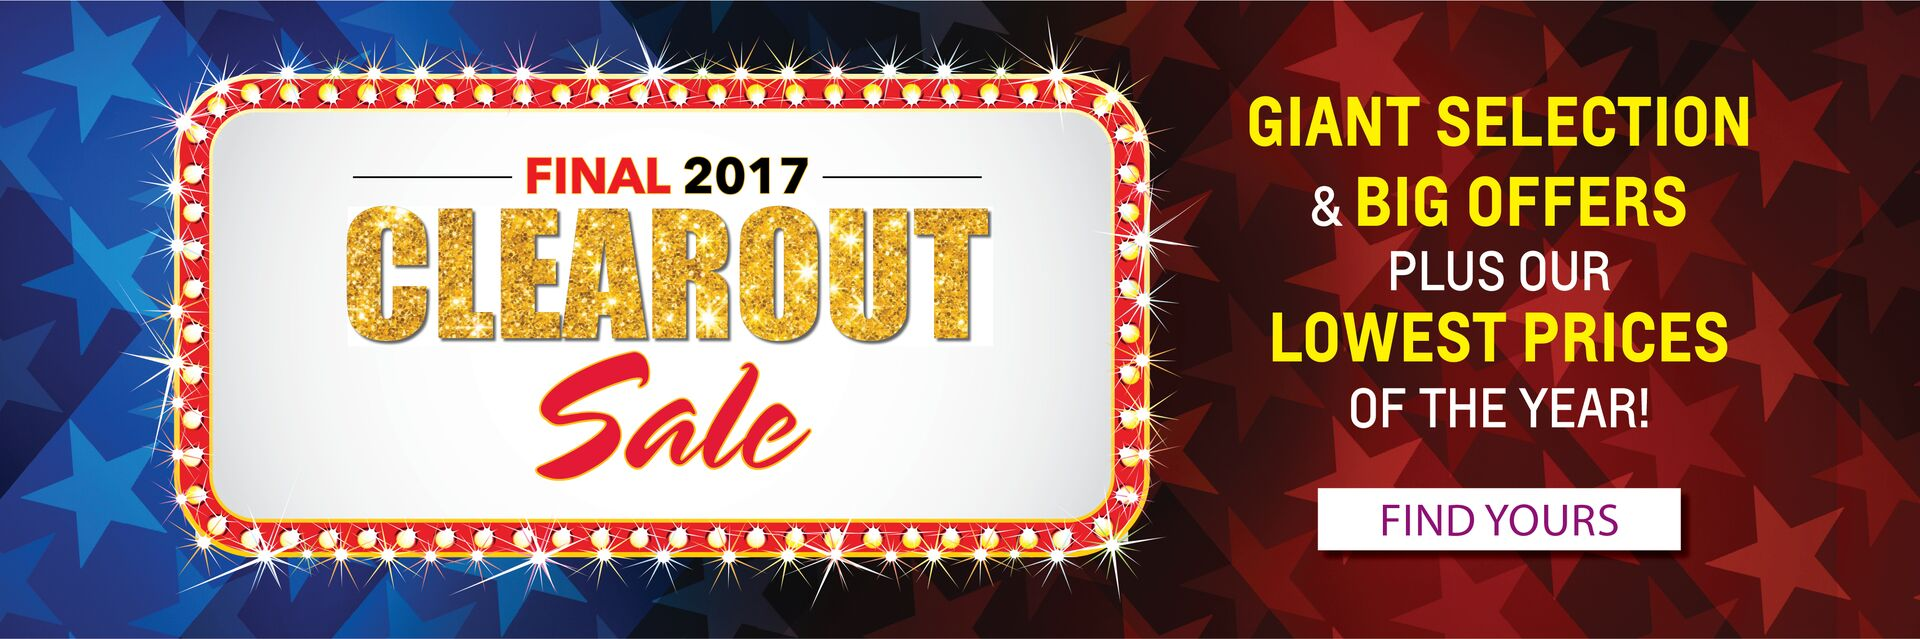 Final 2017 Clearout Sale at Holiday Ford in Fond du Lac, WI